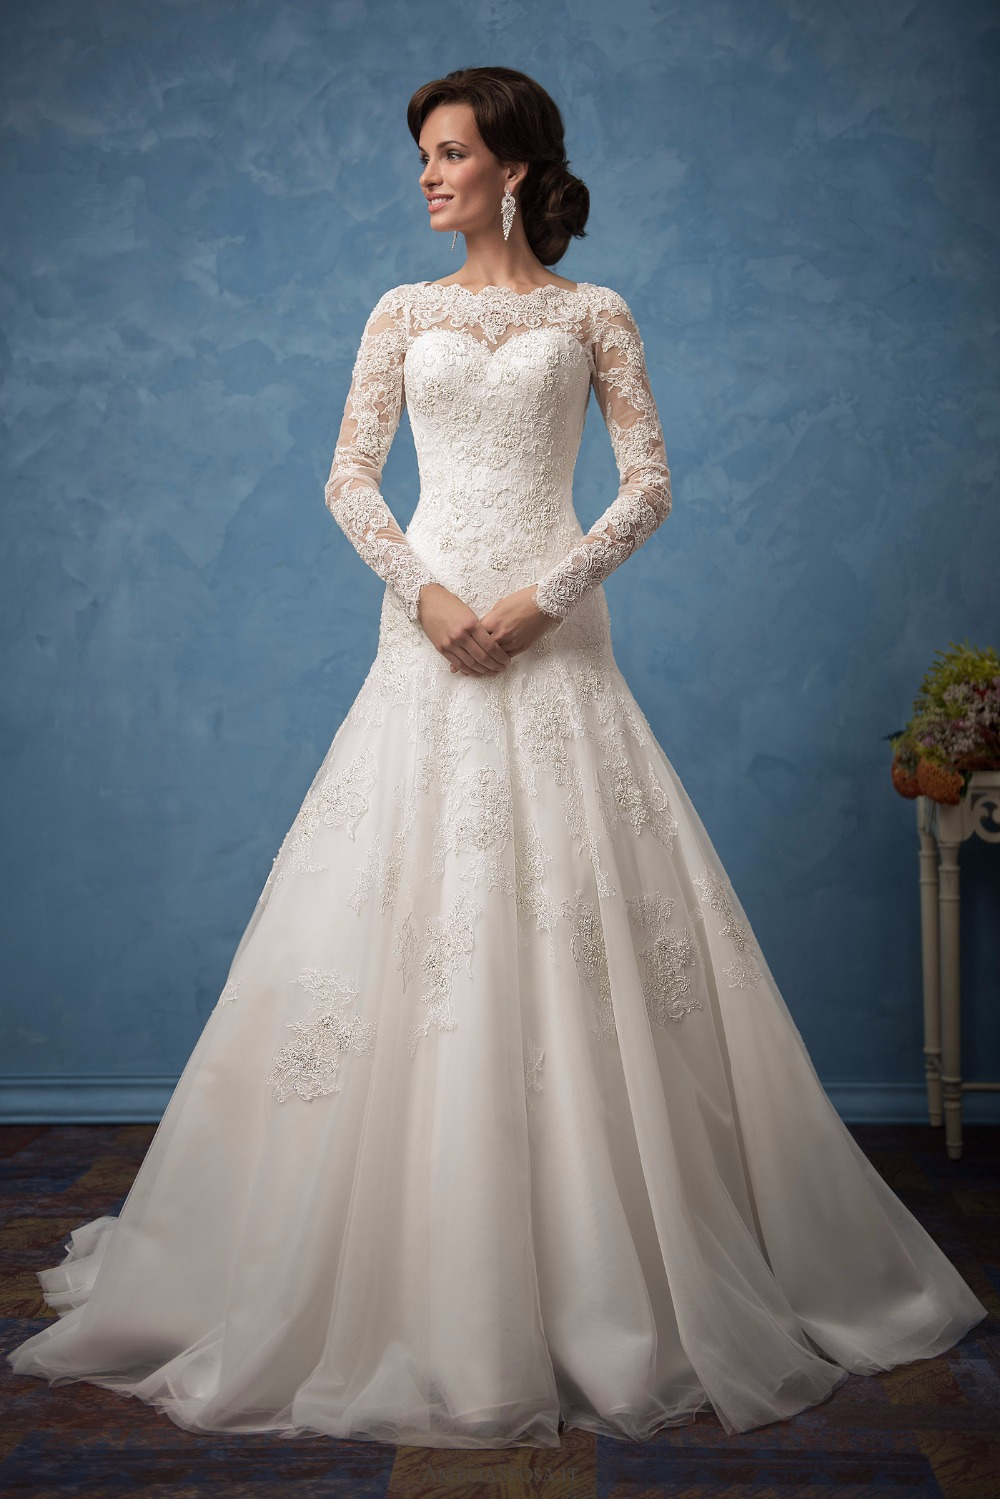 Dorable Enzoani Dakota Wedding Dress Model - All Wedding Dresses ...